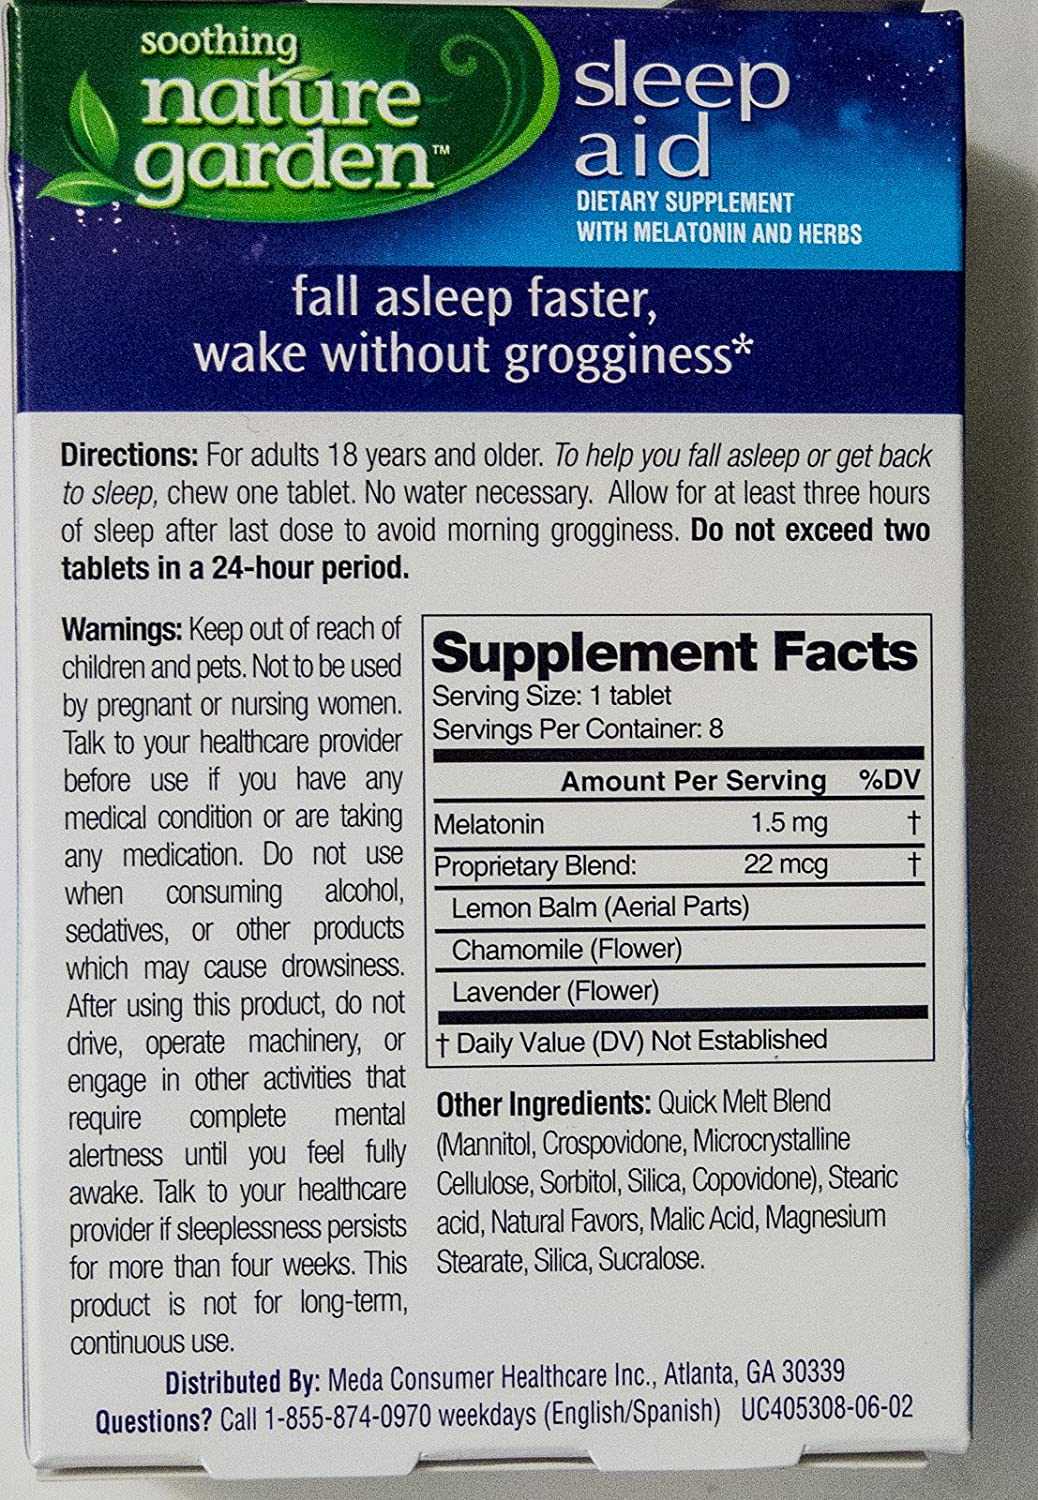 Amazon.com: Soothing Nature Garden Sleep Aid Remedy (4 Boxes - Total 32 Cherry tablets): Health & Personal Care